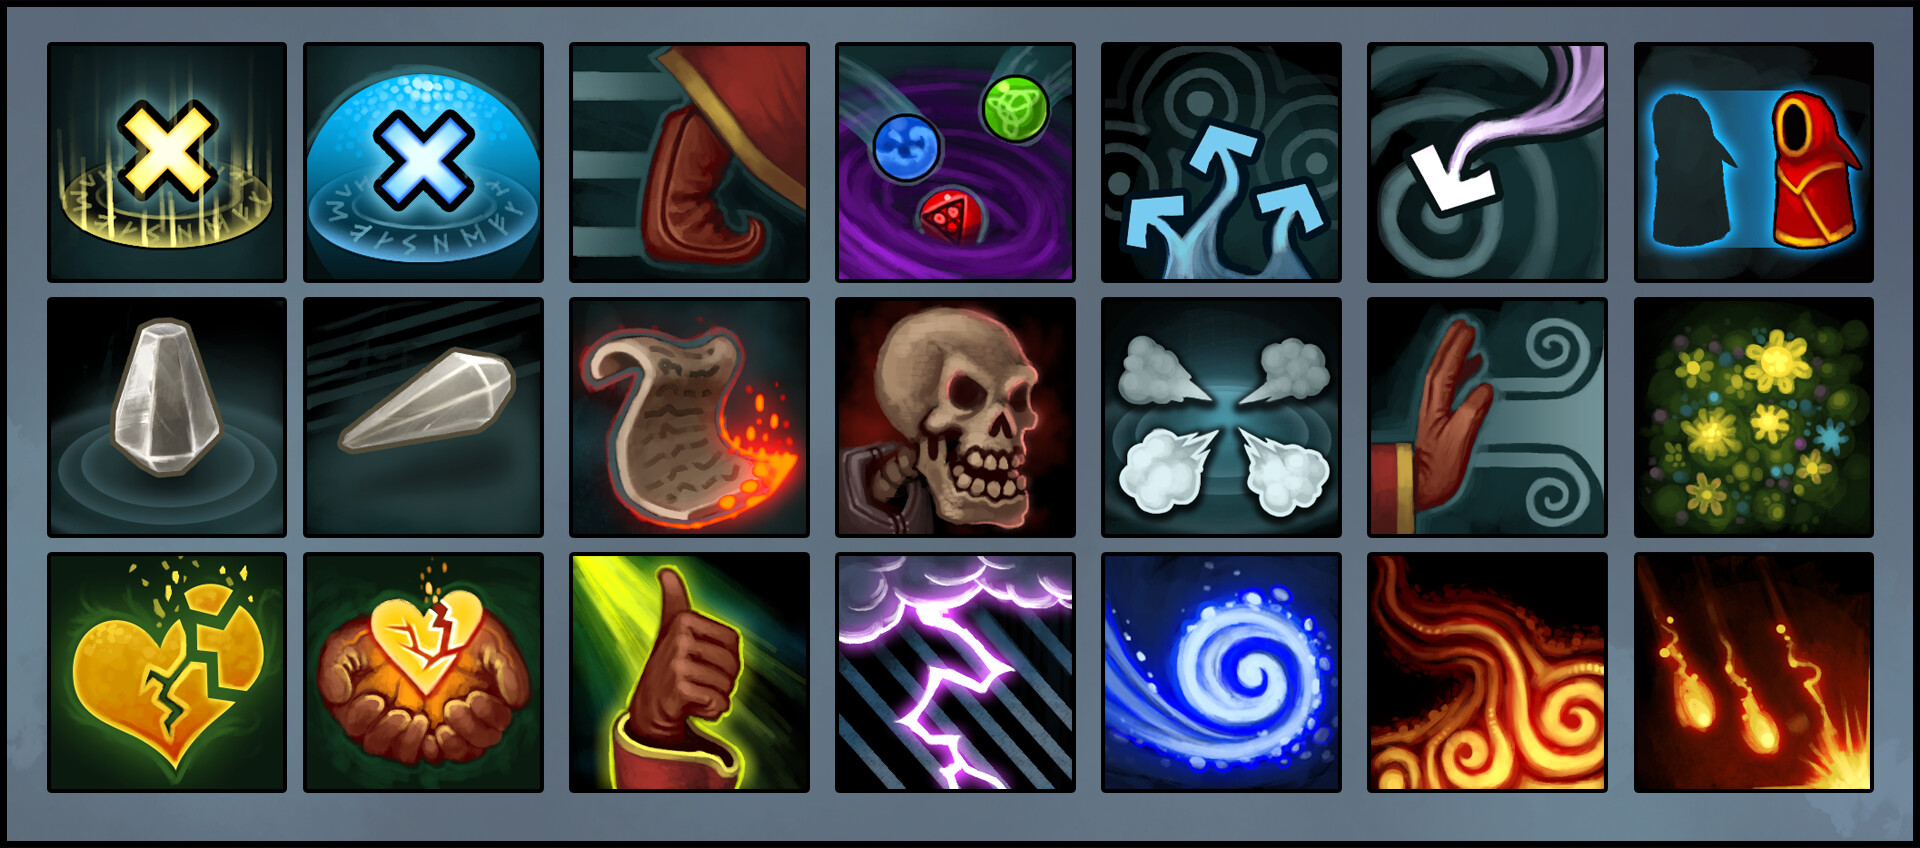 Skill icons for all spells the wizards could use